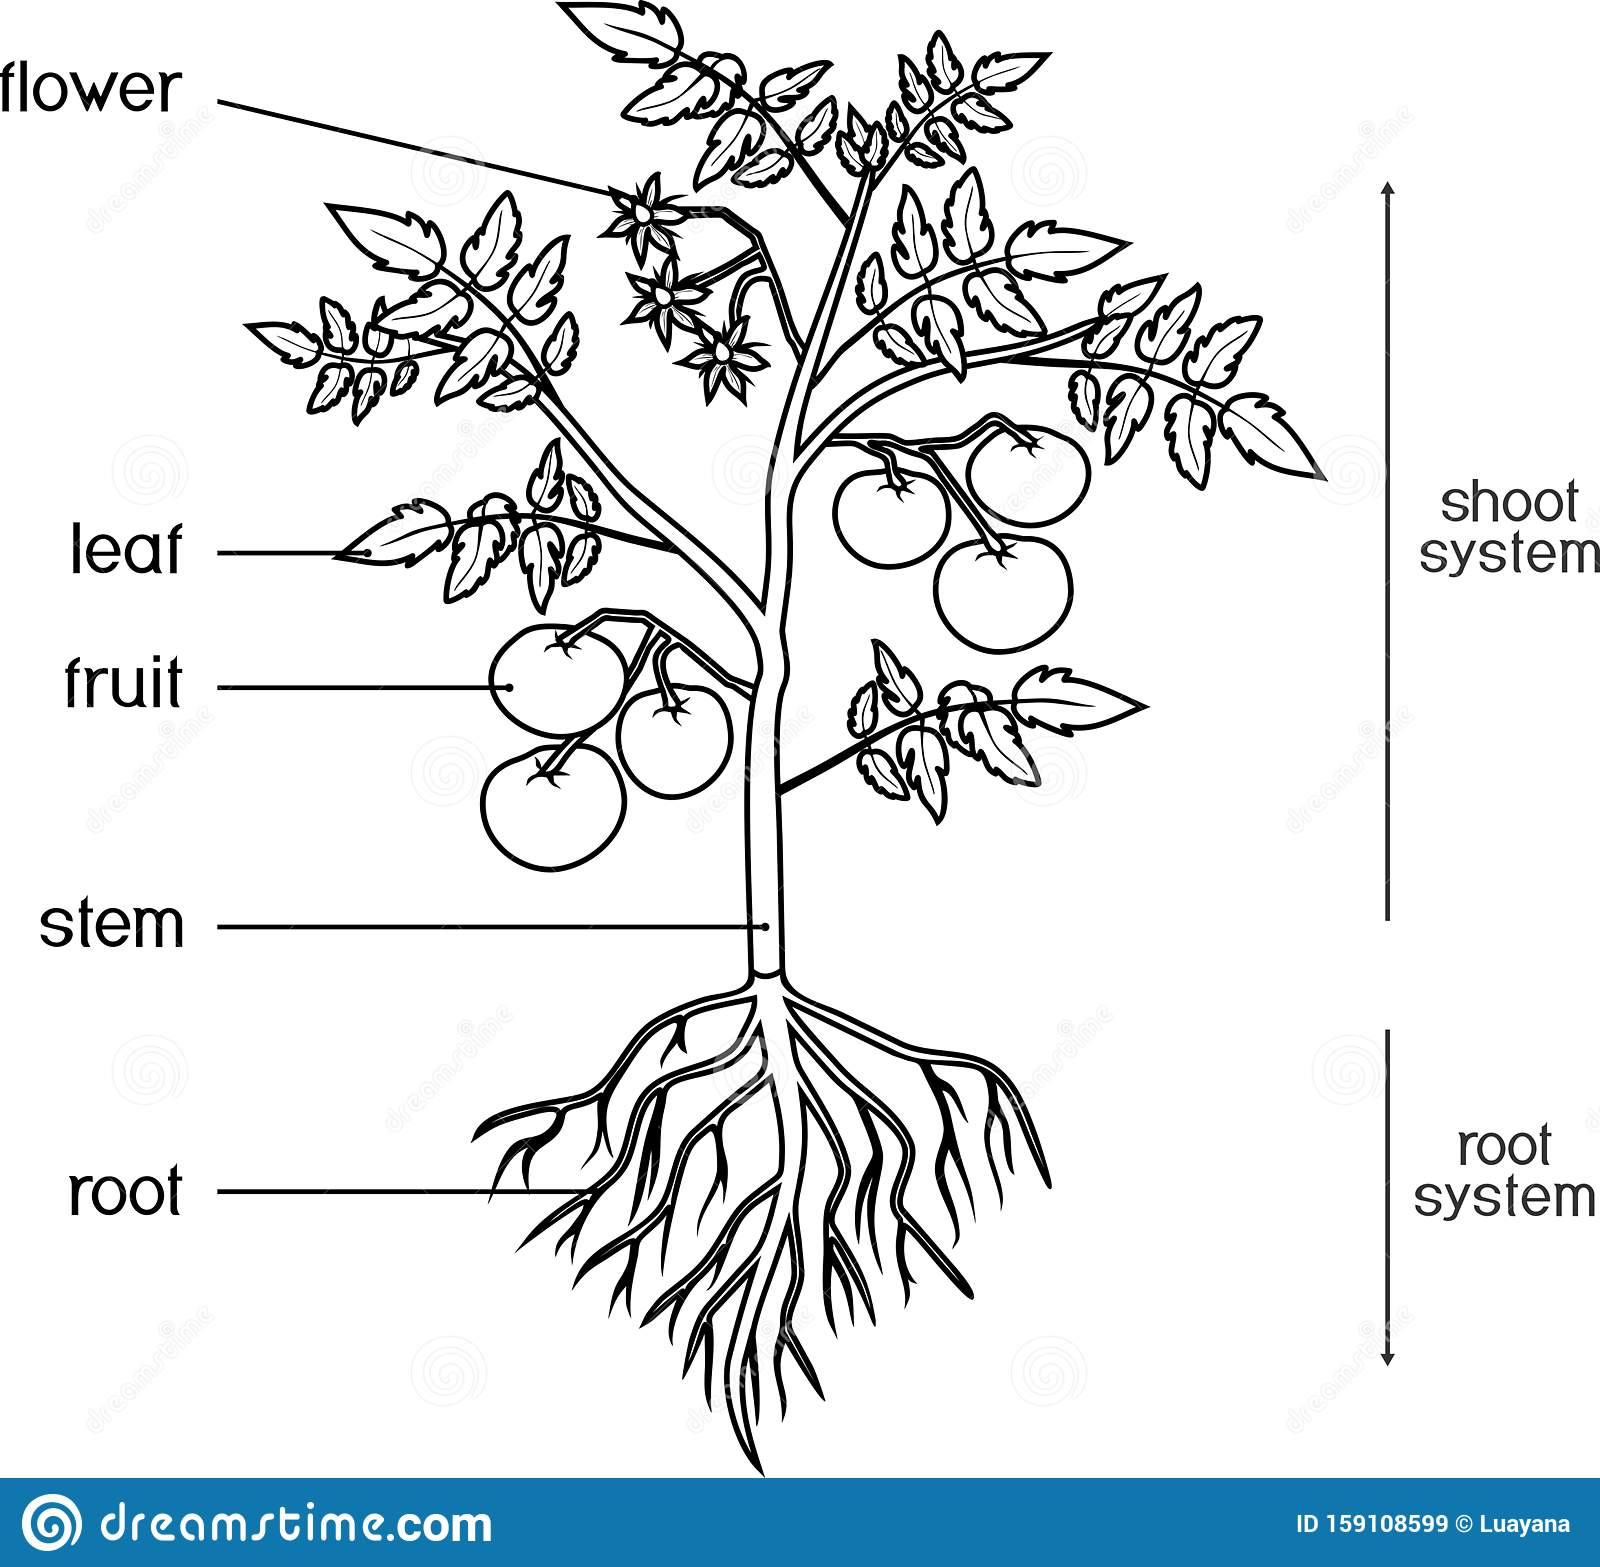 Parts Of Plant Morphology Of Tomato Plant With Leaves